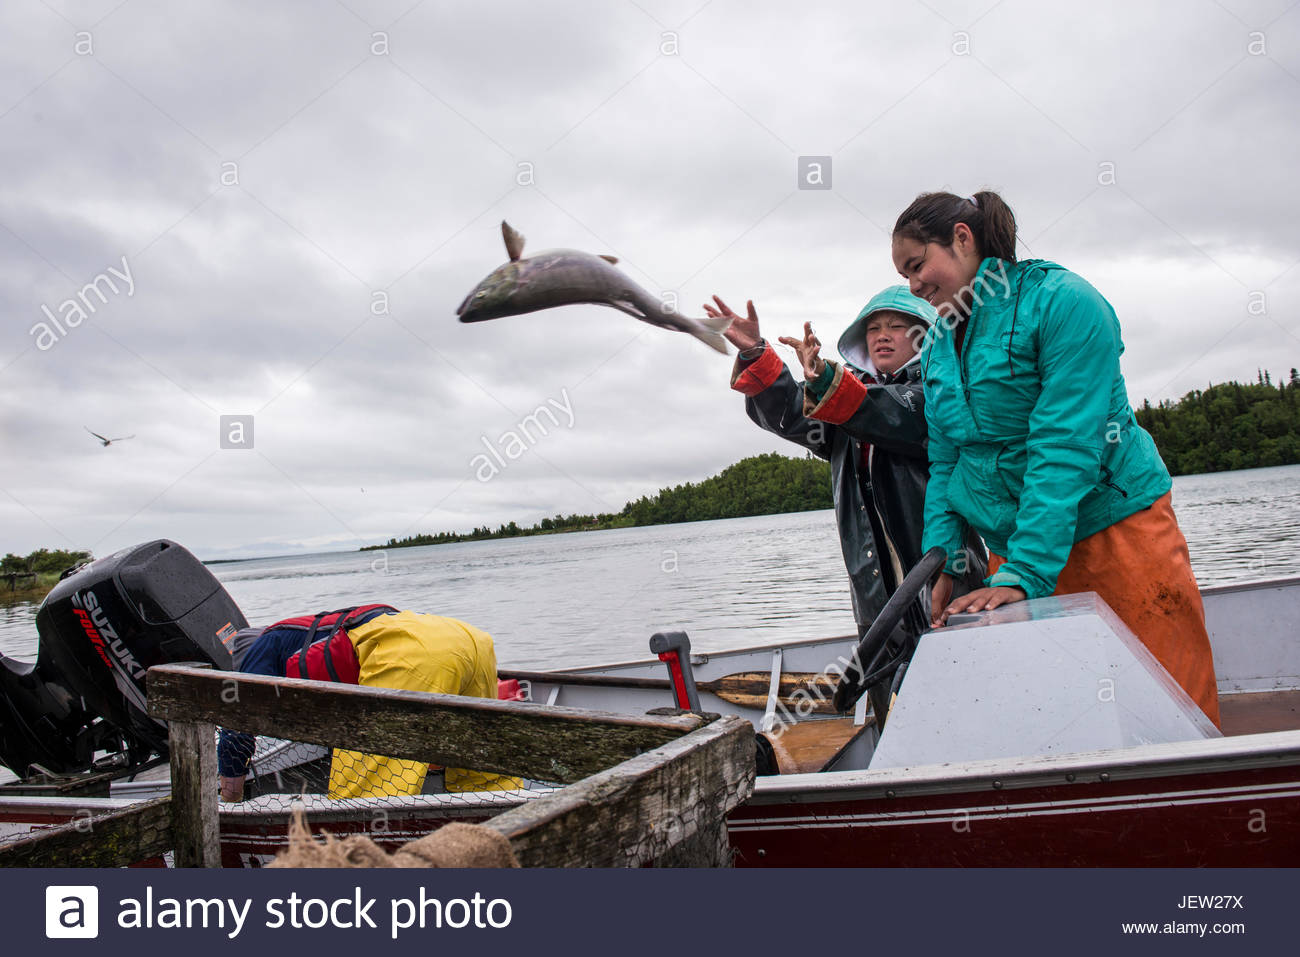 Denai'ina Athabascan girls toss sockeye salmon from a boat into a holding pen. - Stock Image